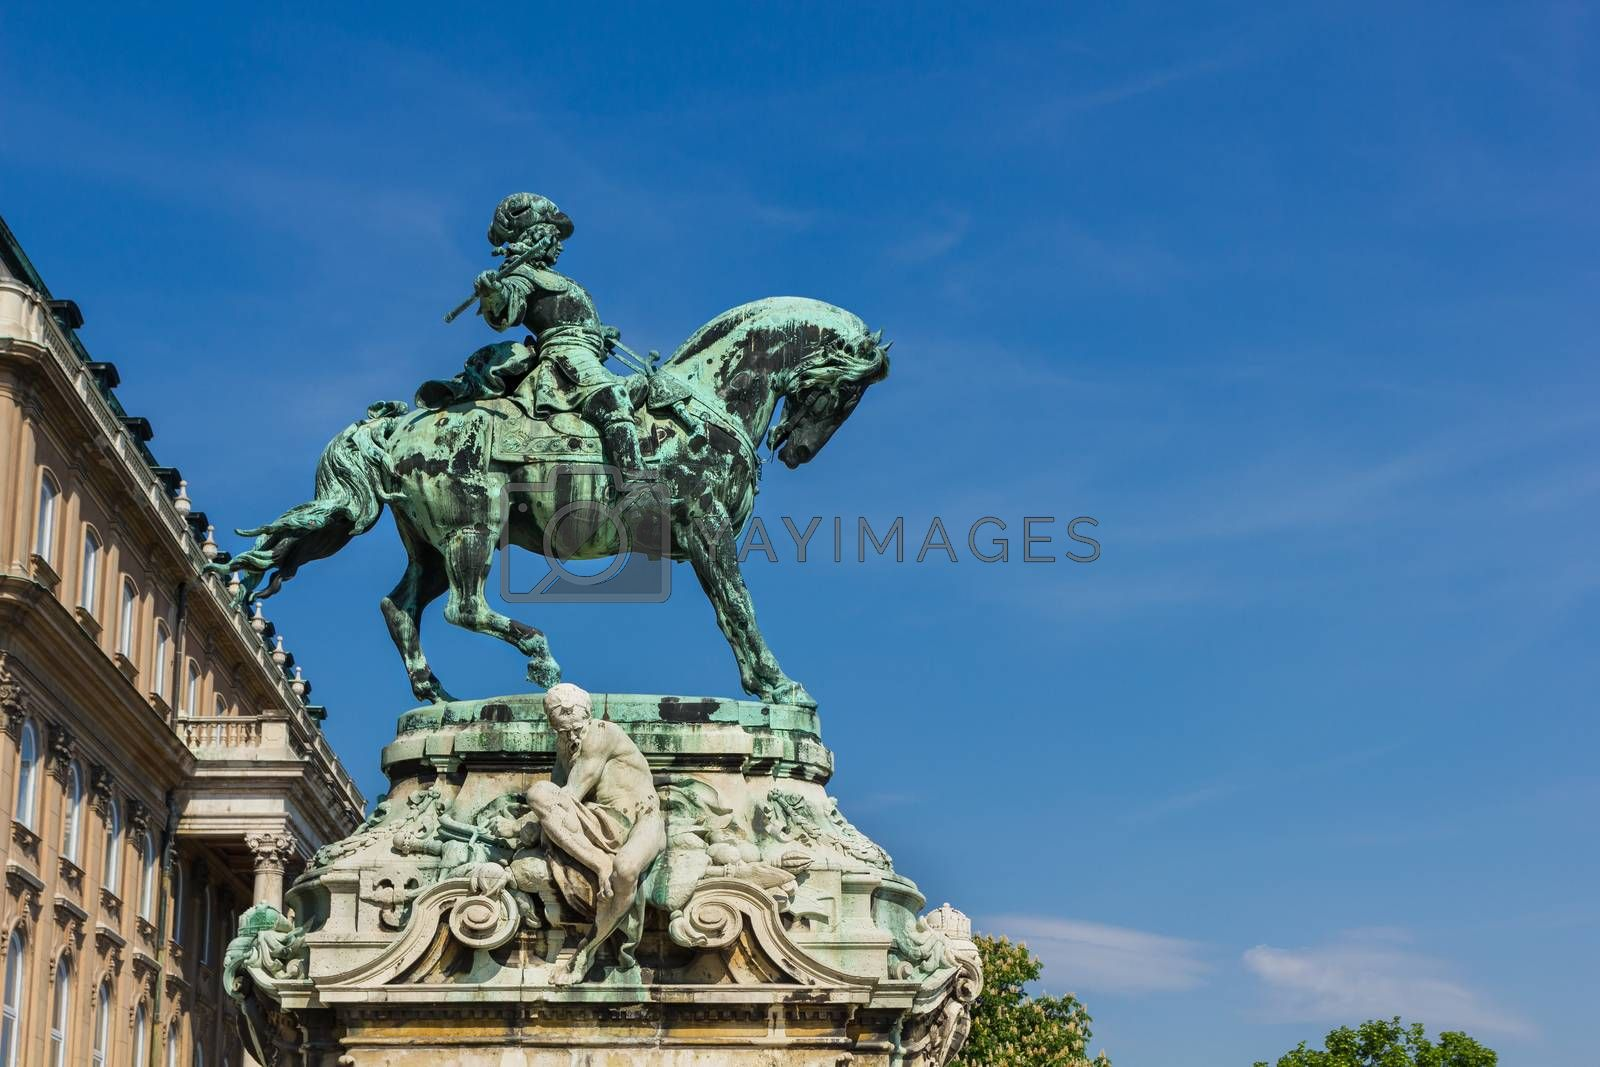 Royalty free image of Statue of Prince Eugene of Savoy in Budapest Hungary by marugod83